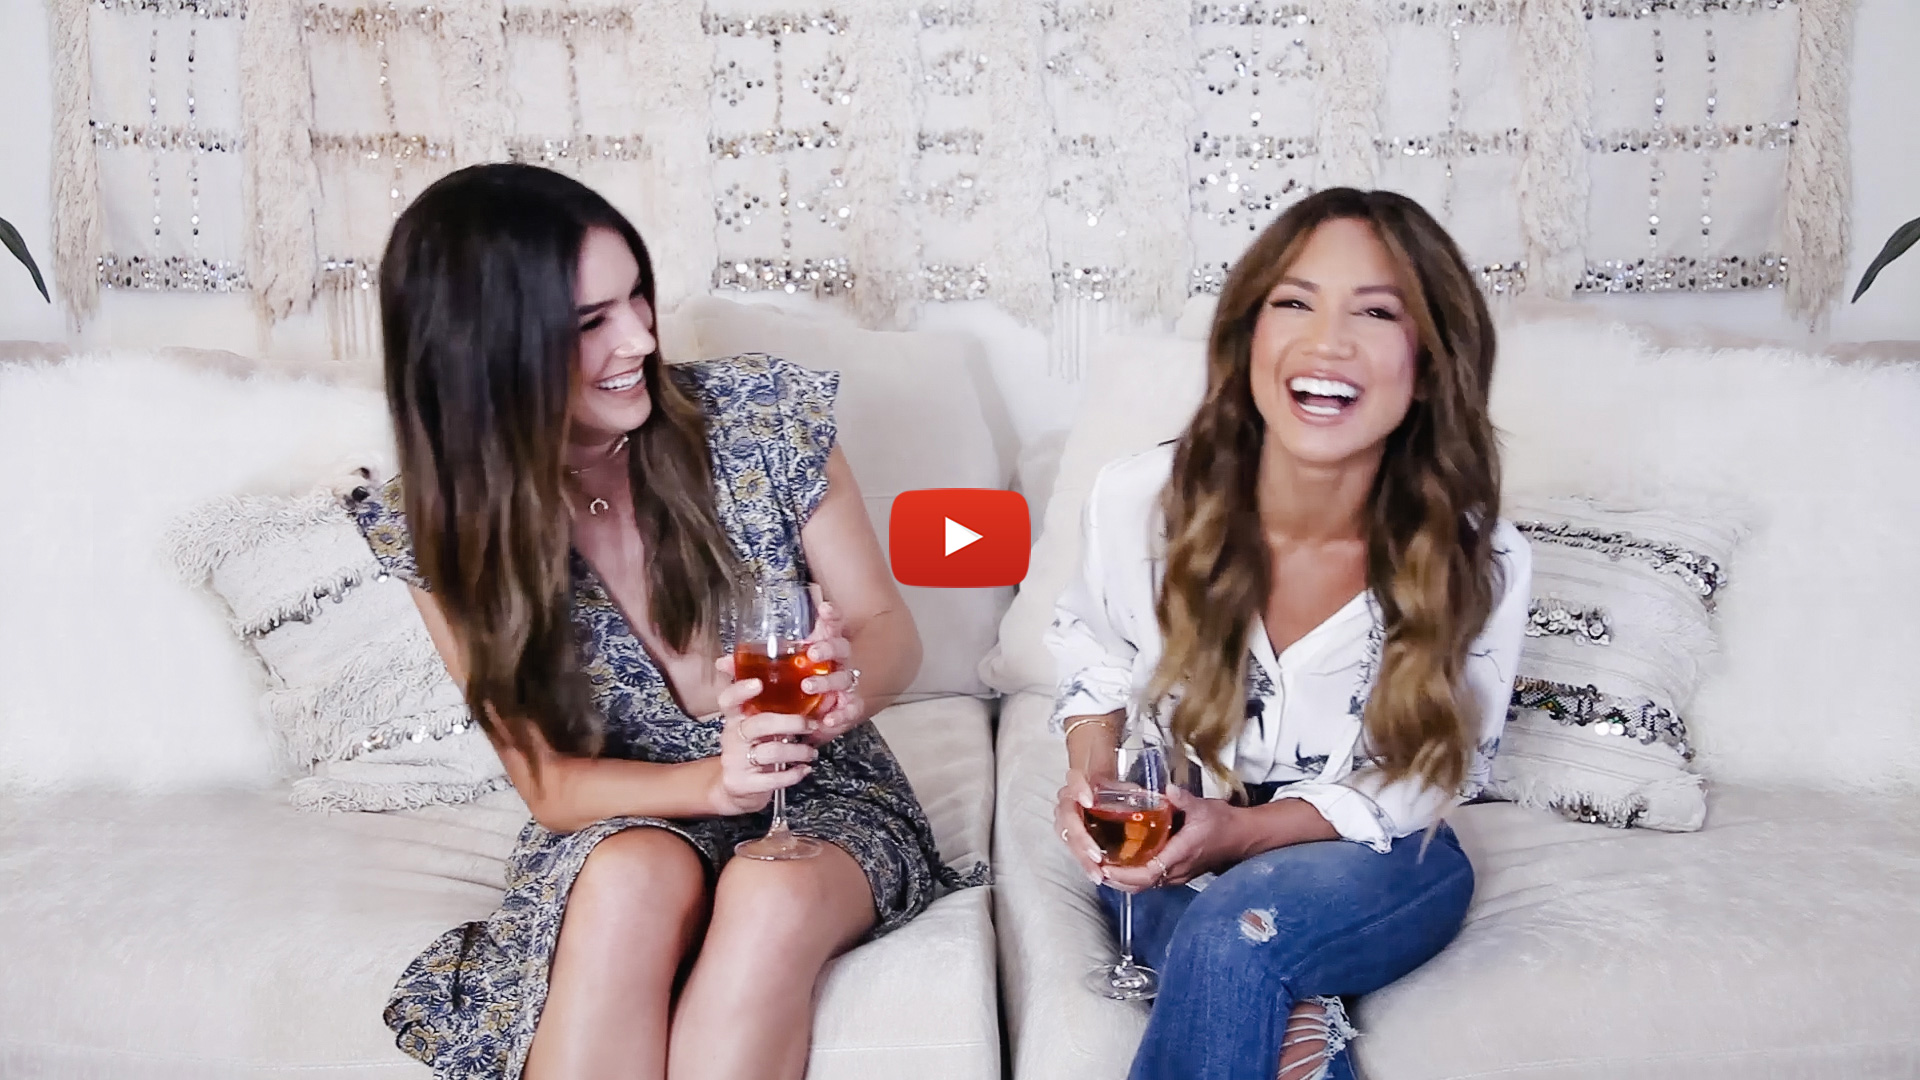 Watch The Happiest Hour featuring Brittany Xavier from Thrifts and Threads